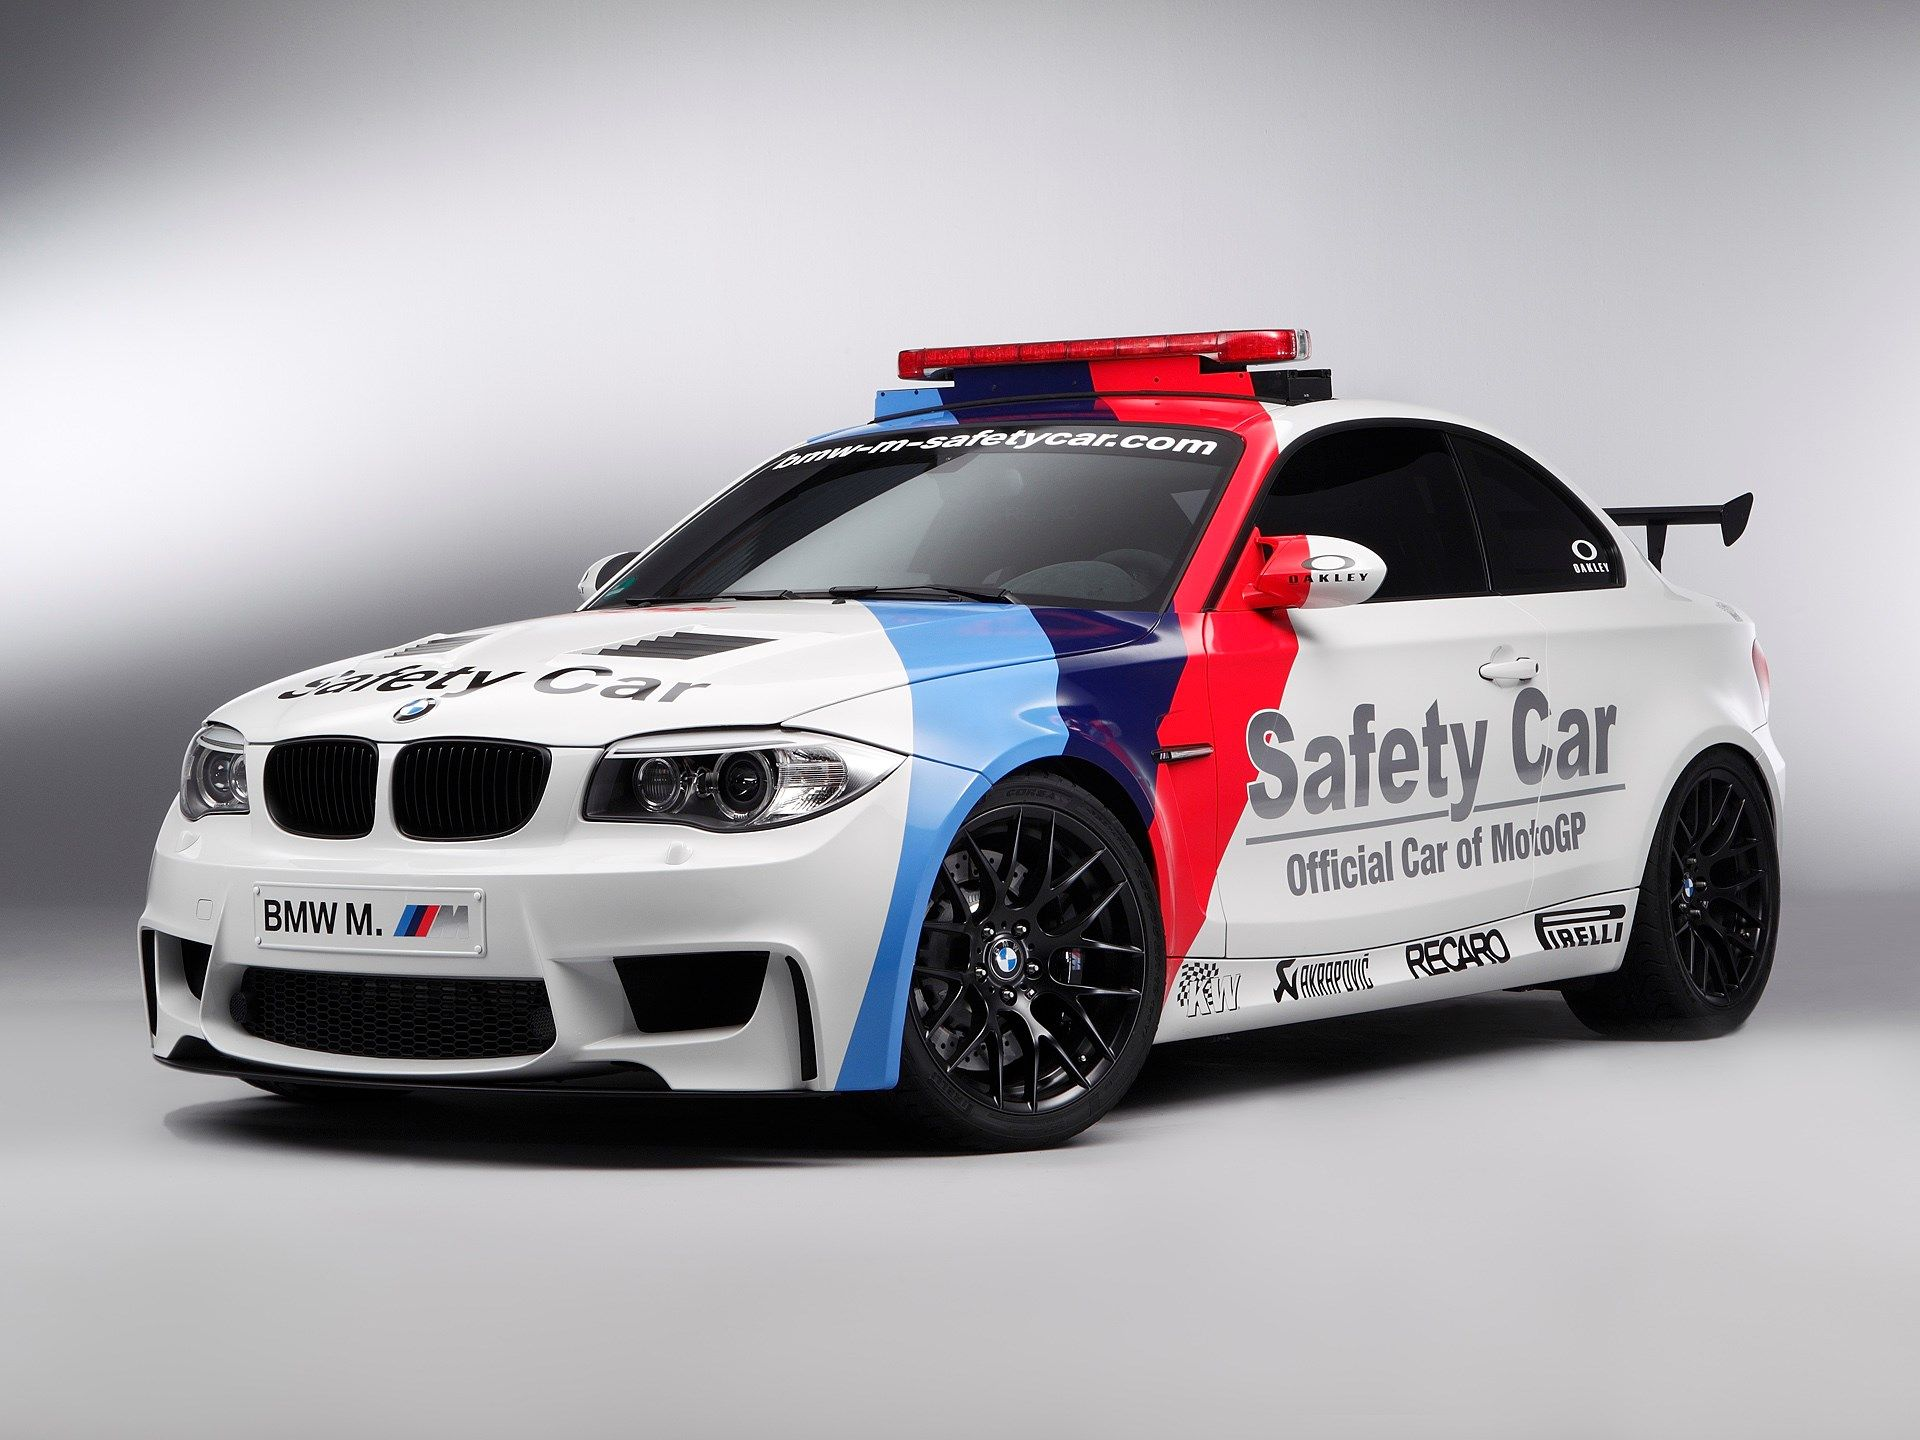 Bmw 5 series touring police 2013 uk wallpapers and hd images car - Backgrounds In High Quality Bmw E34 Wallpaper Bmw E34 Category Ololoshenka Pinterest Bmw